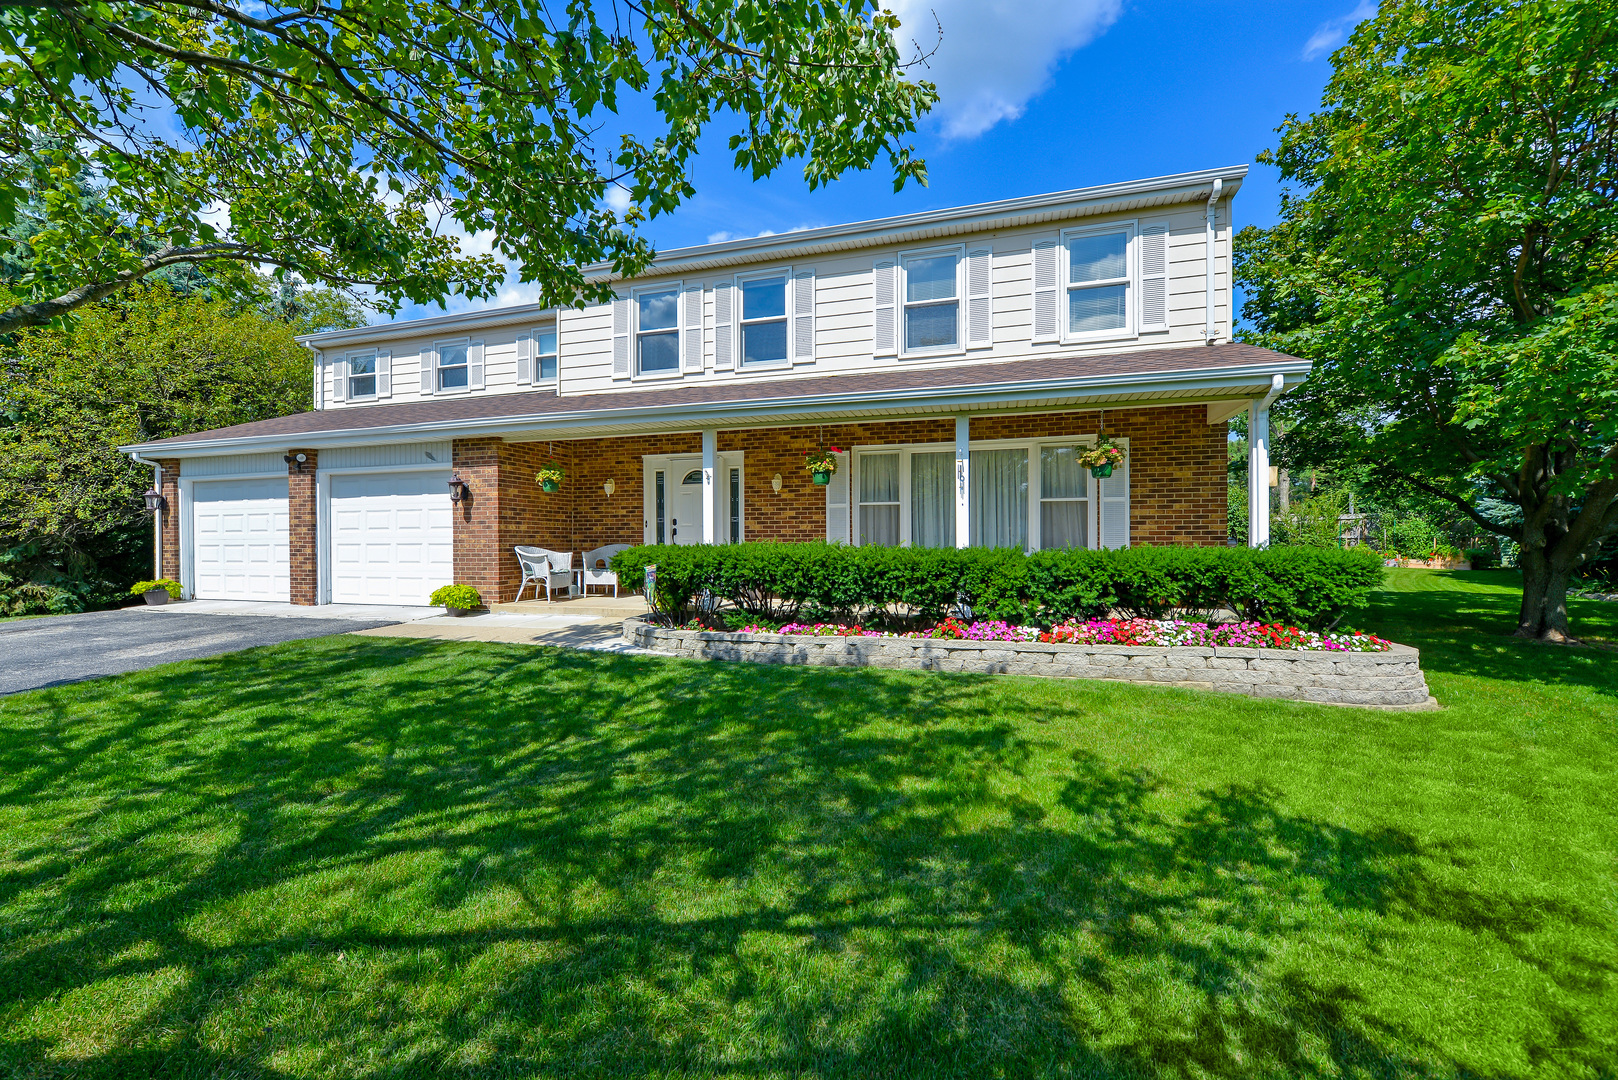 101 Tudor Drive, Barrington in Cook County, IL 60010 Home for Sale